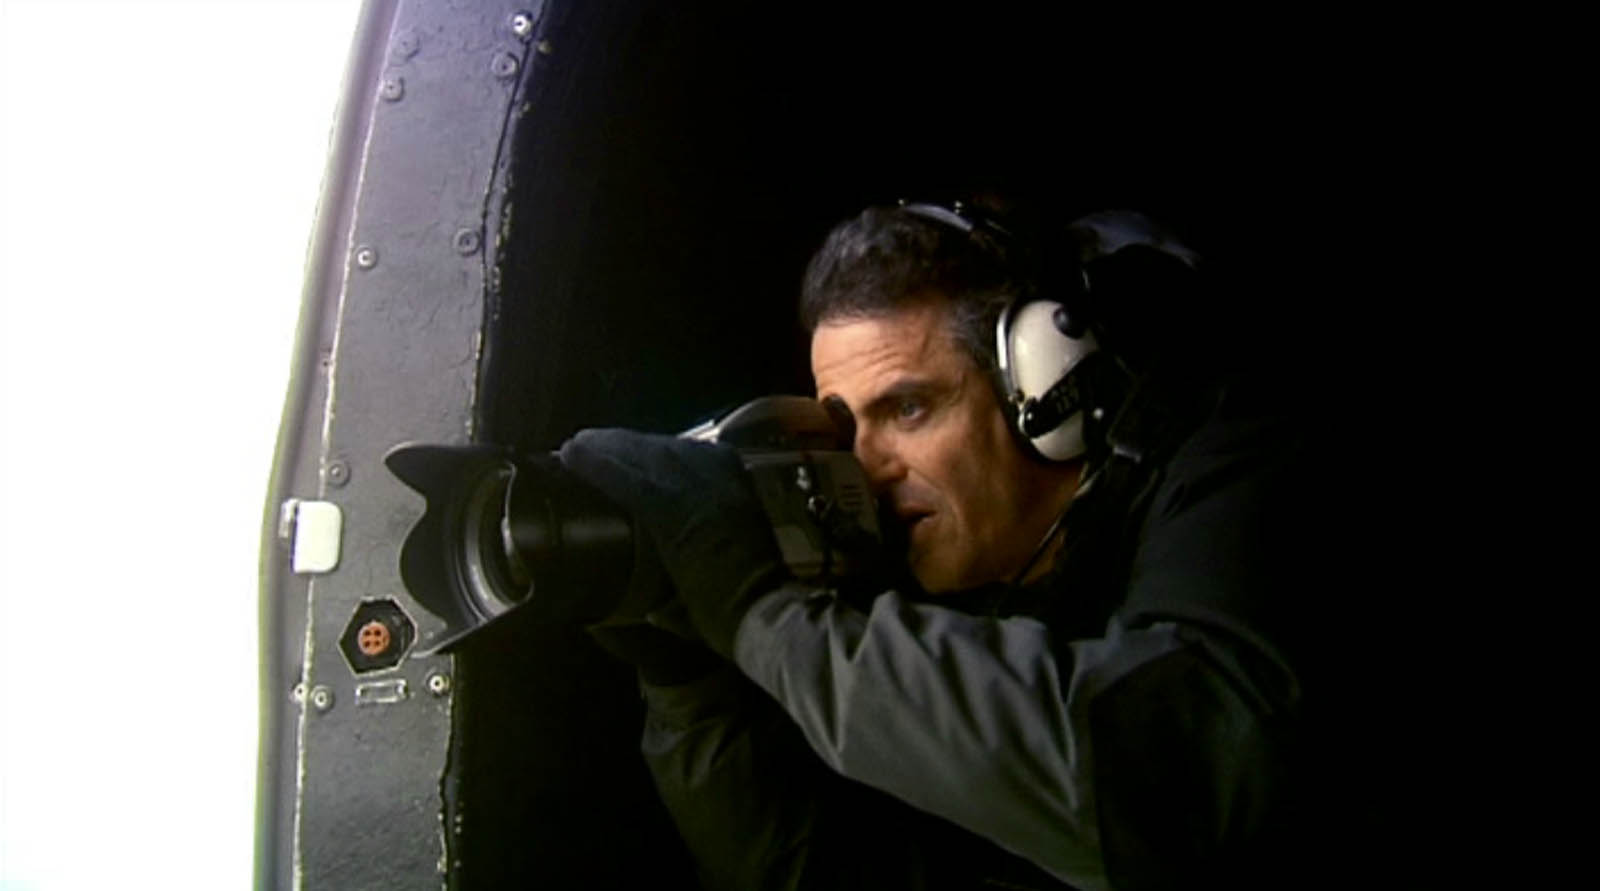 Video production for BBC Worldwide of Magnum photographer Donovan Wylie - Donovan photographing from British army helicopter filmed by a director at Bout Yeh video production Belfast, Northern Ireland